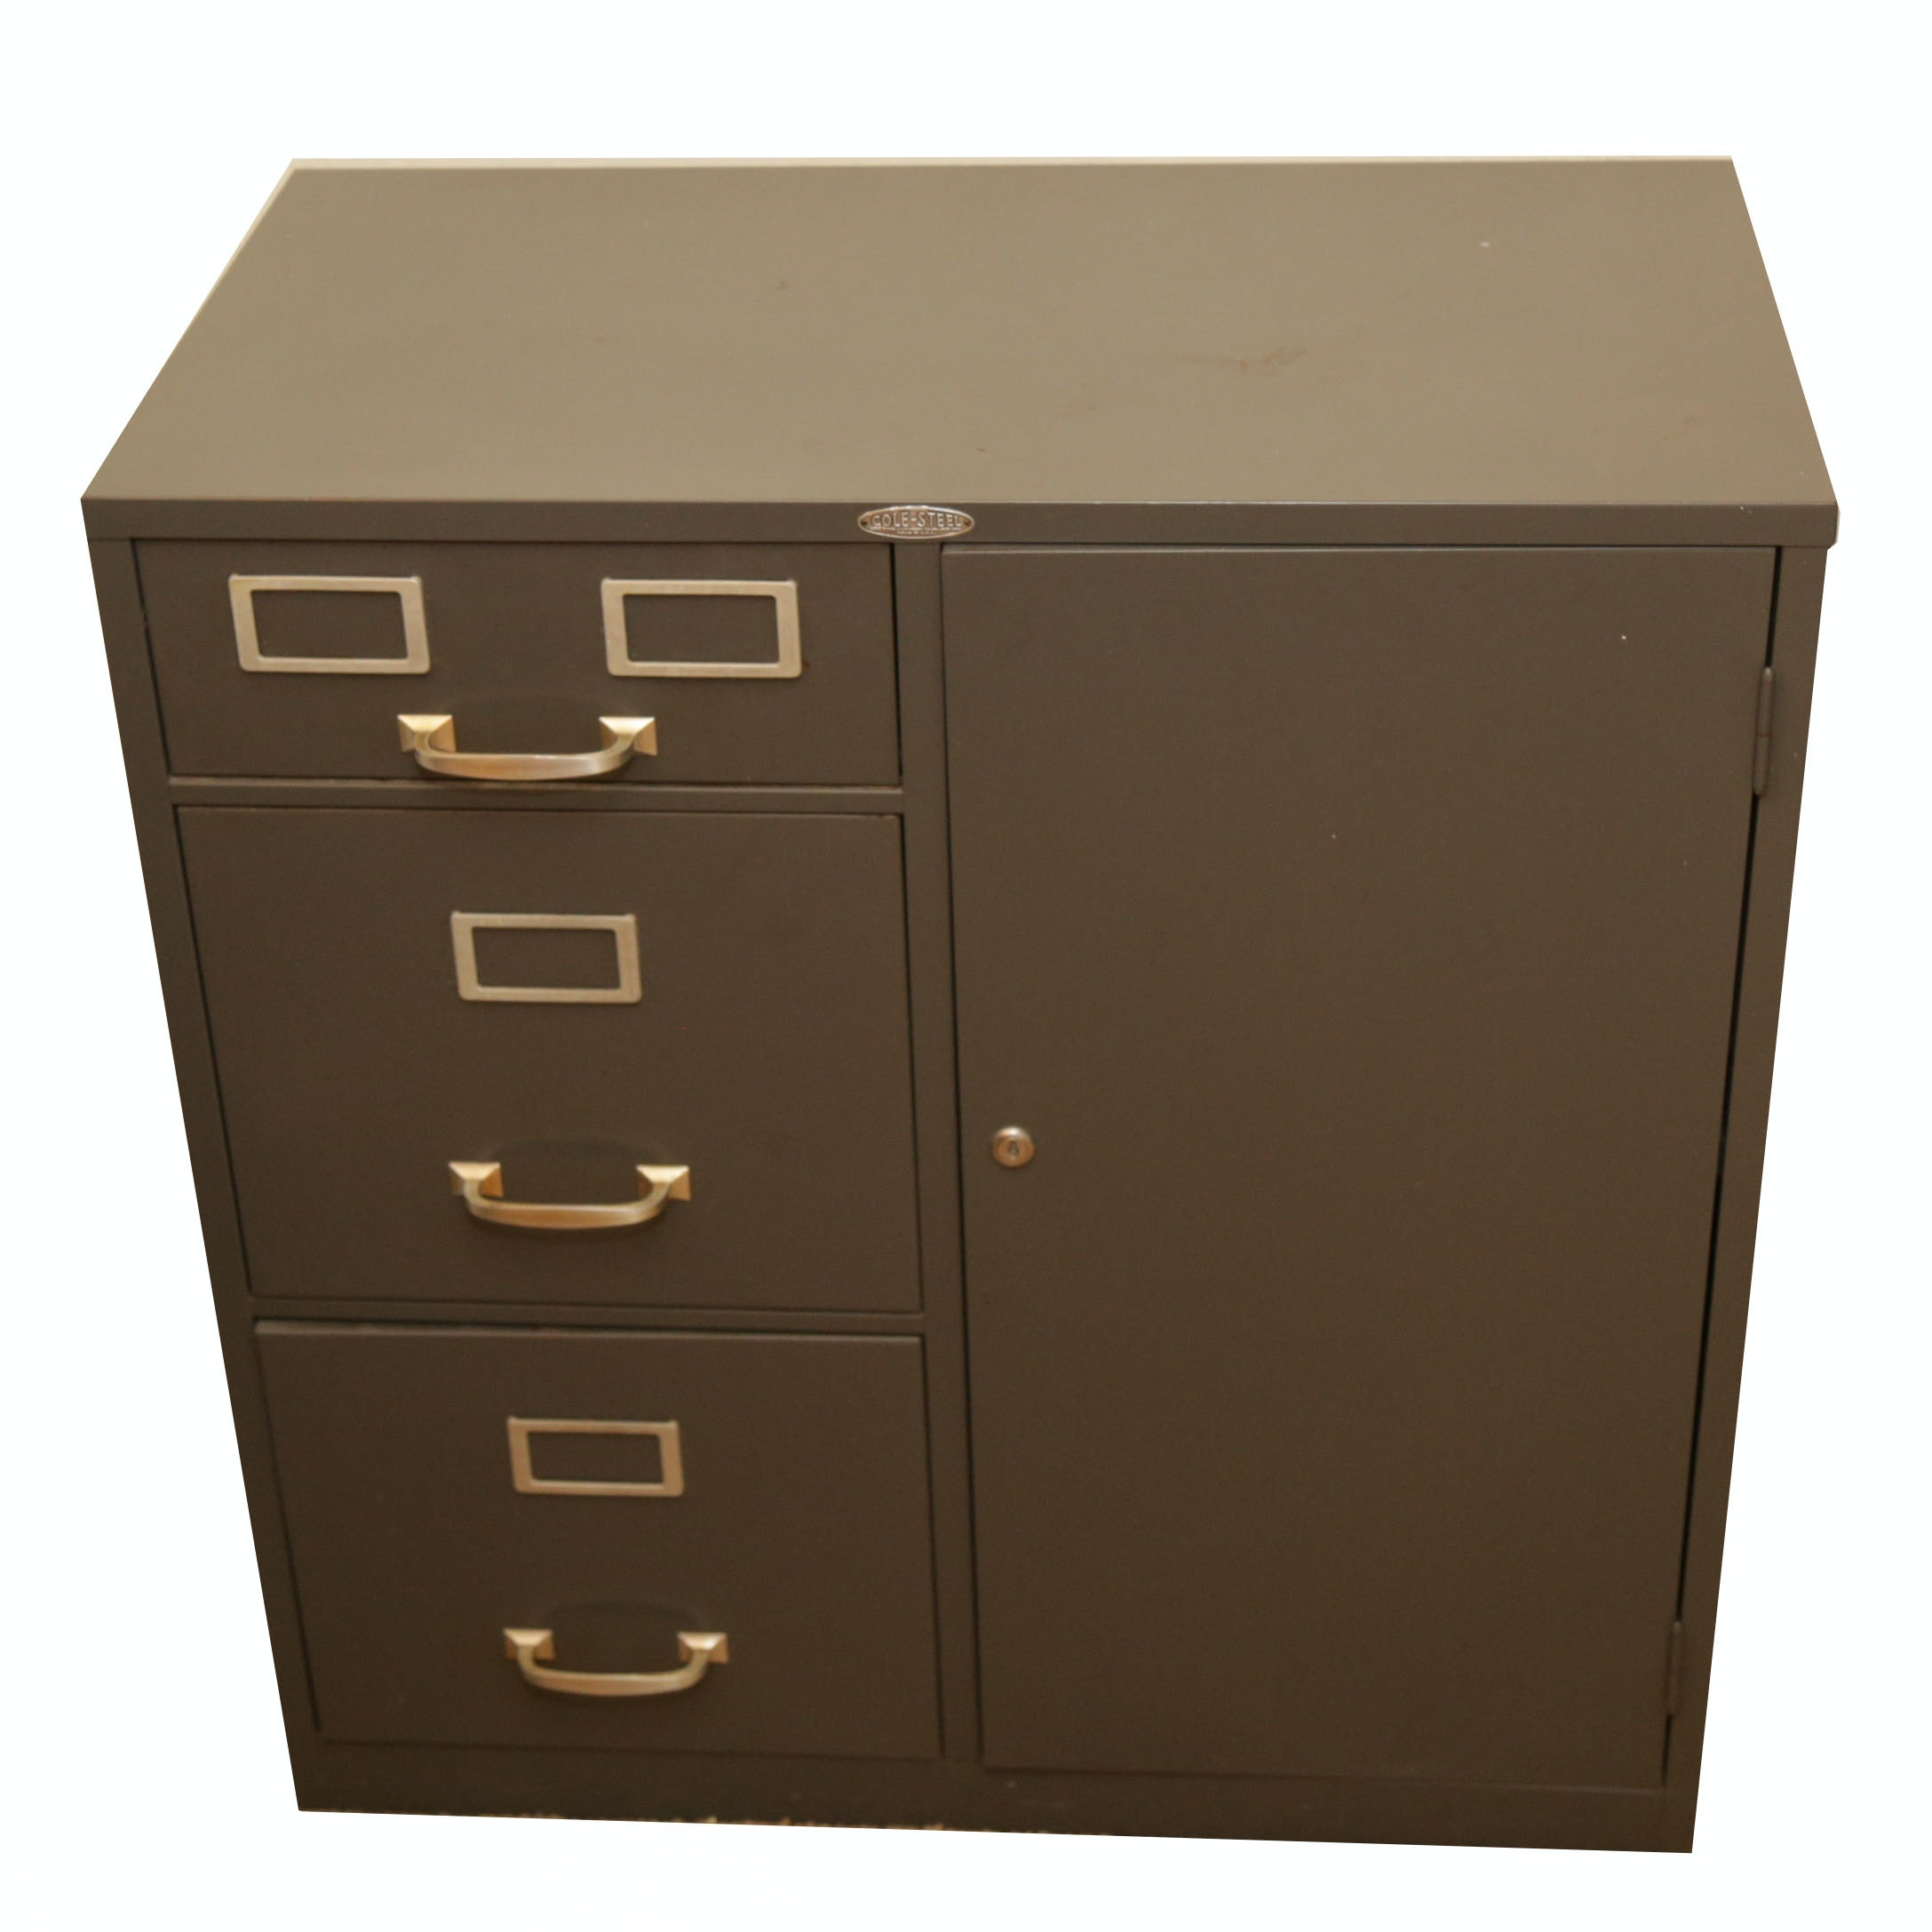 Merveilleux Cole Steel Metal Filing Cabinet With Safe ...